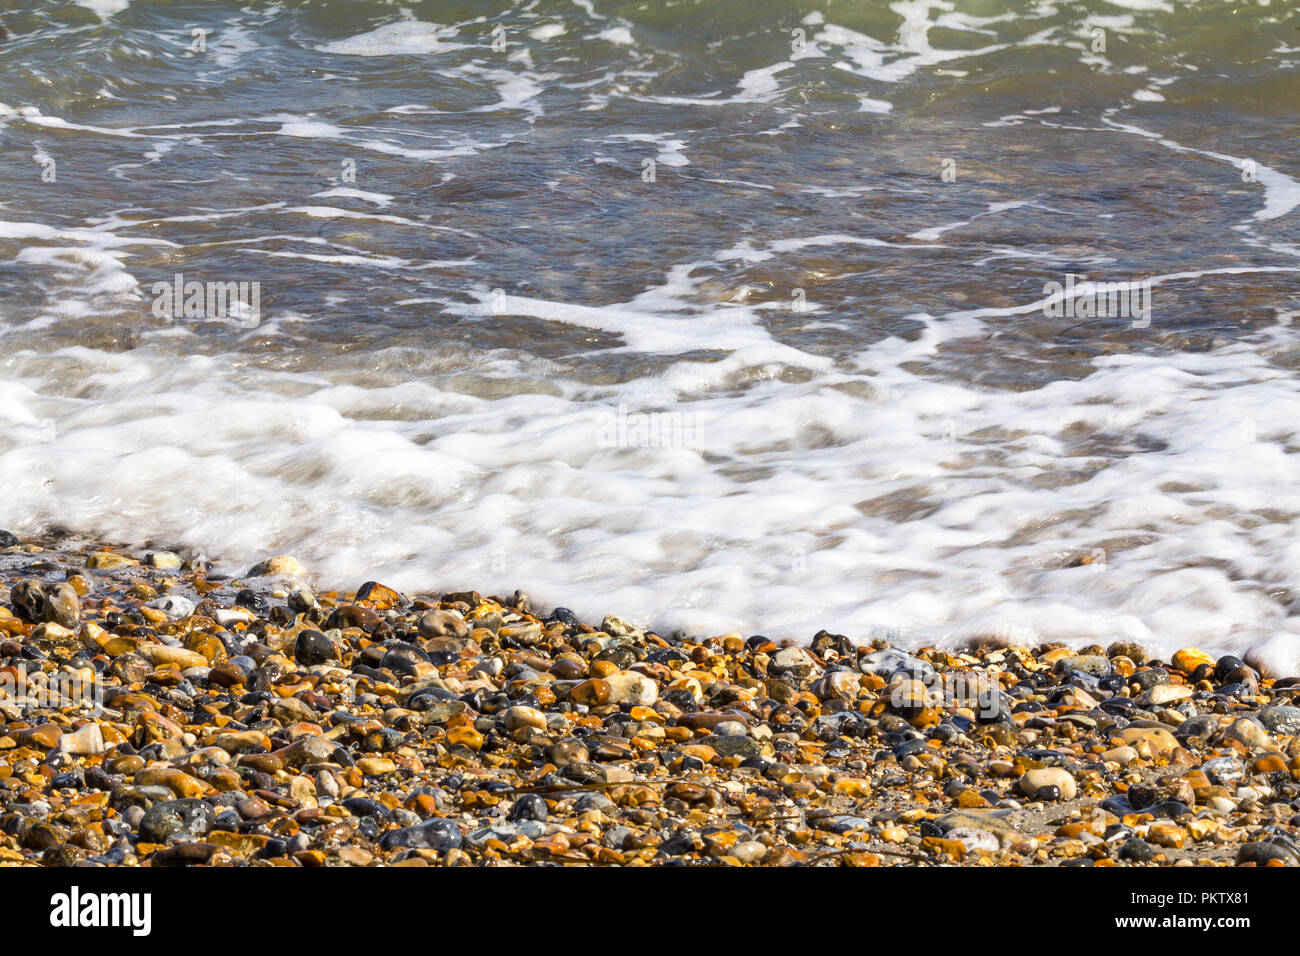 On the beach at Pagham harbour tide comming in. Surf small waves pebbles and shells in late summer. Simple calming waters edge image UK south coast. - Stock Image